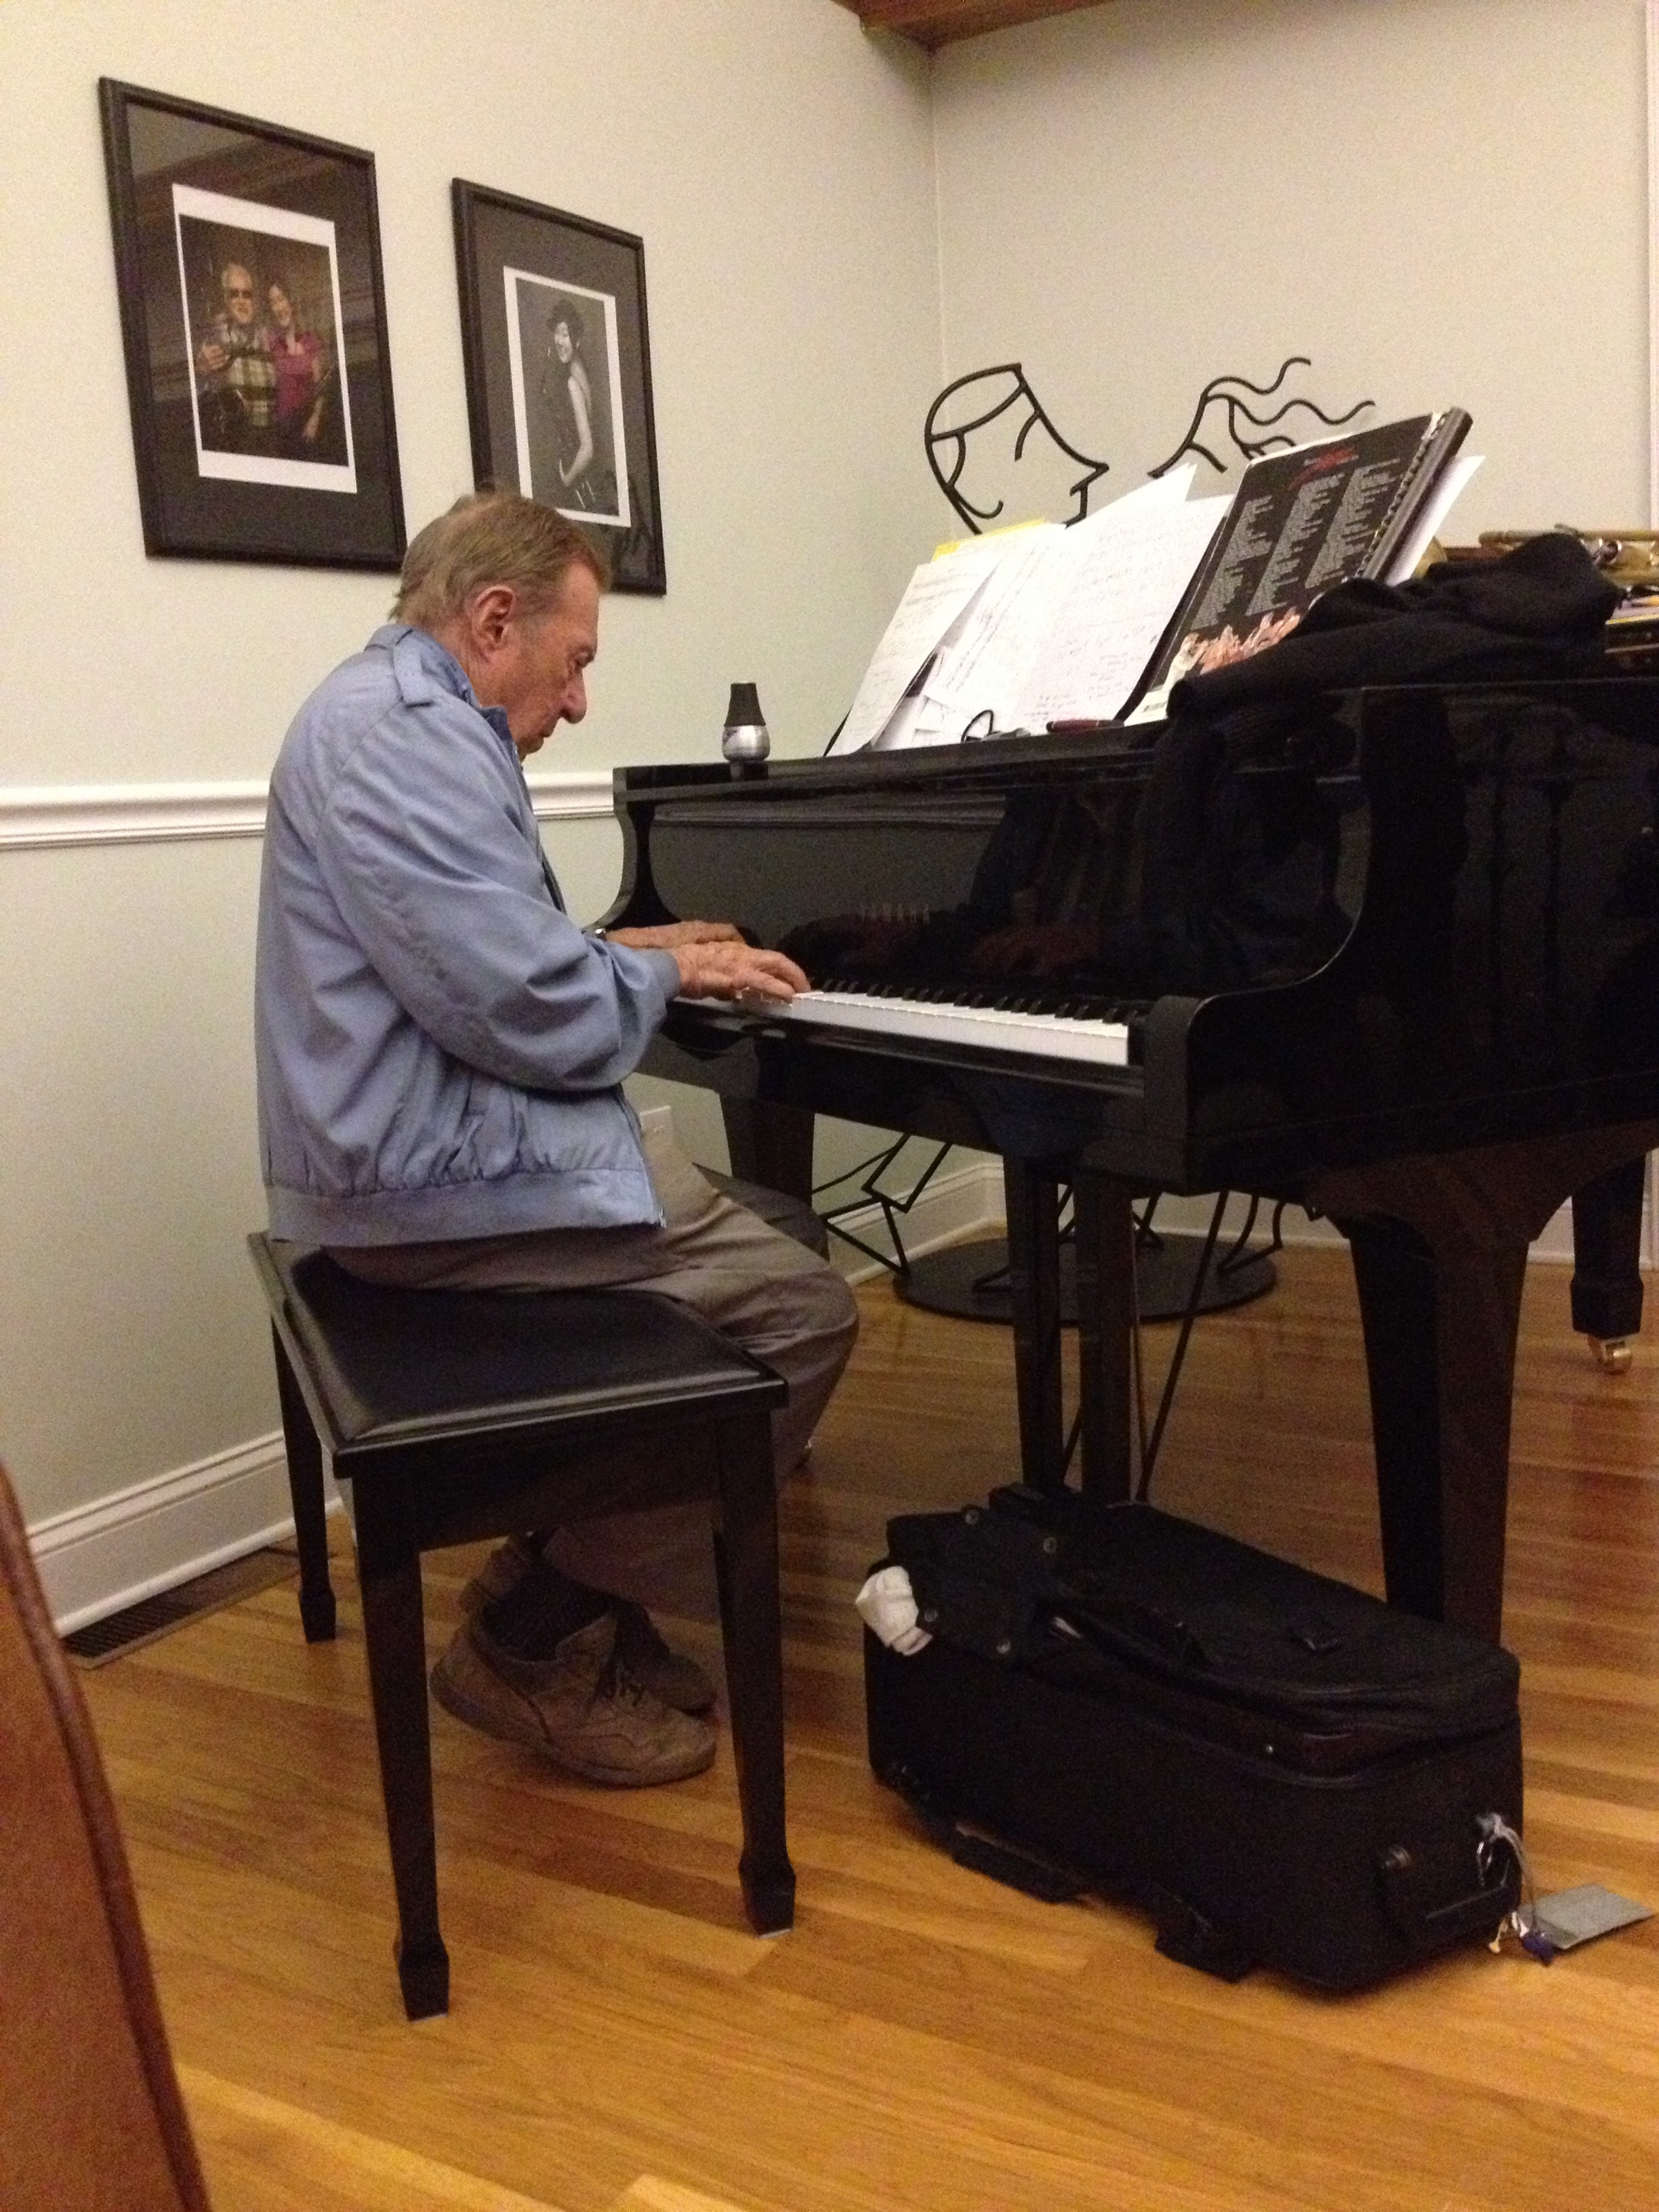 Fred plays piano at the Kelly's IMG_5634.JPG